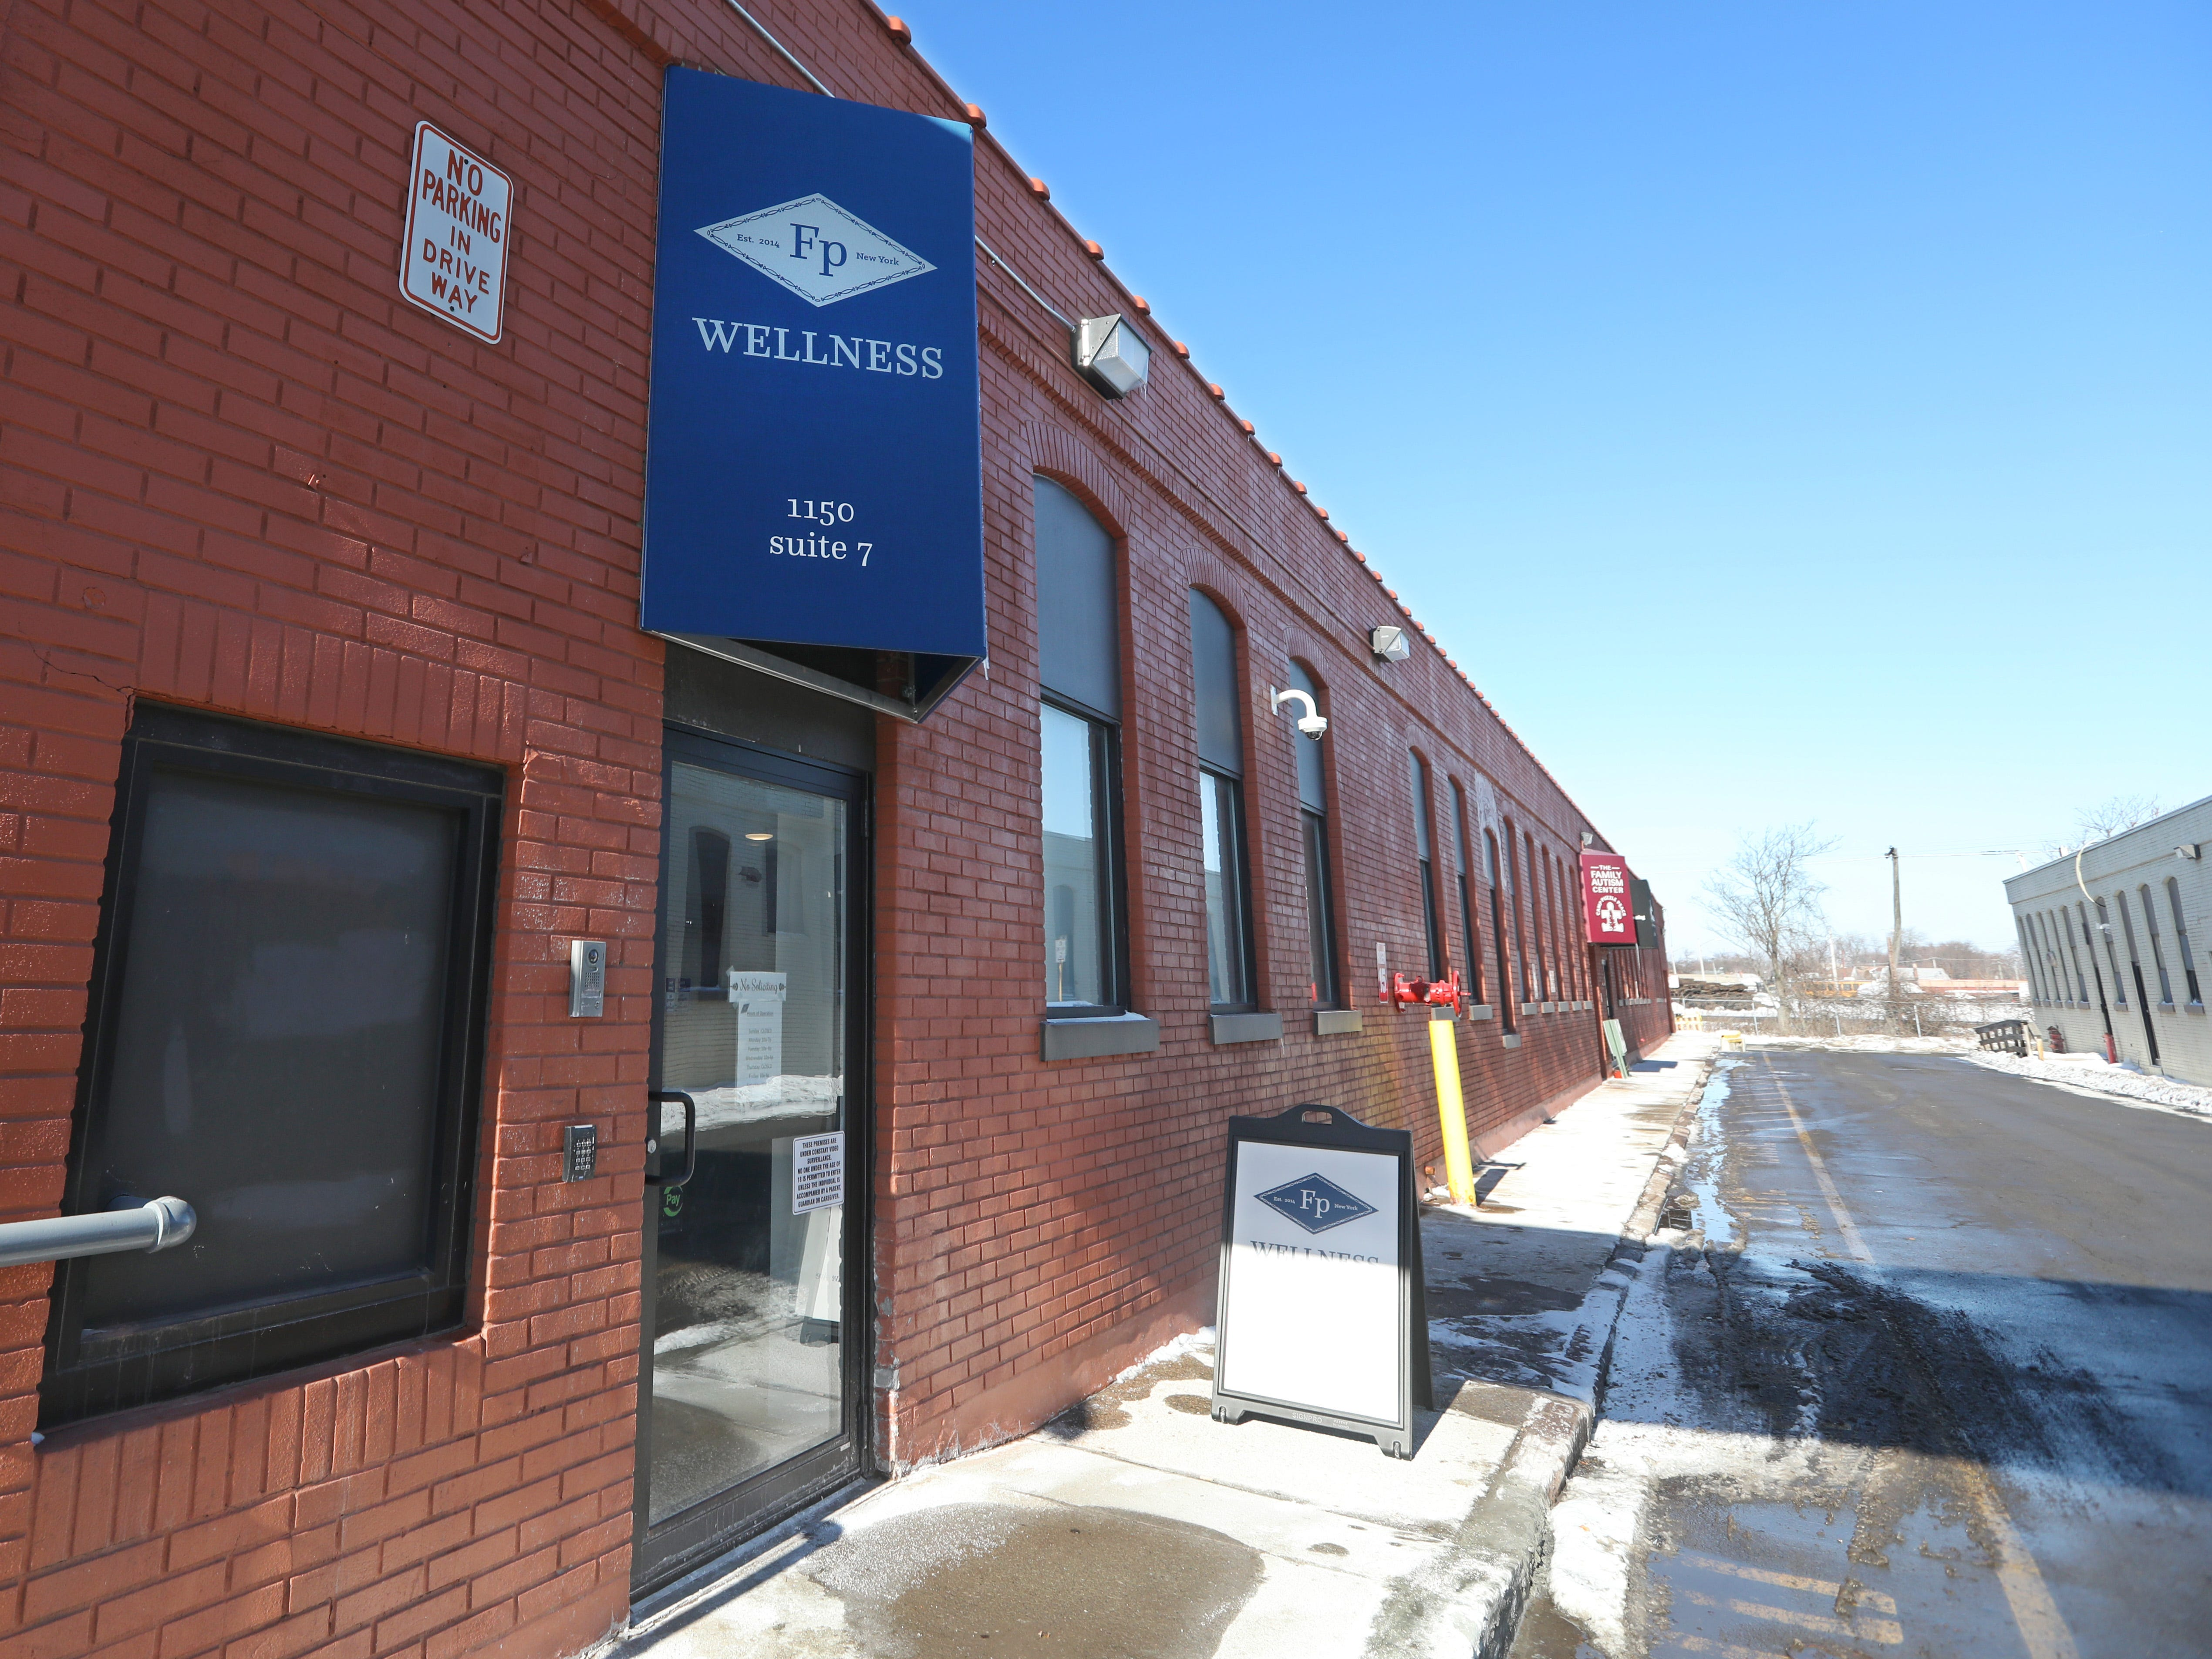 Fiorello Pharmaceuticals, a new marijuana dispensary in Rochester, is located at 1150 University Avenue, Building 5 Suite 7, Friday, Feb. 1, 2019.